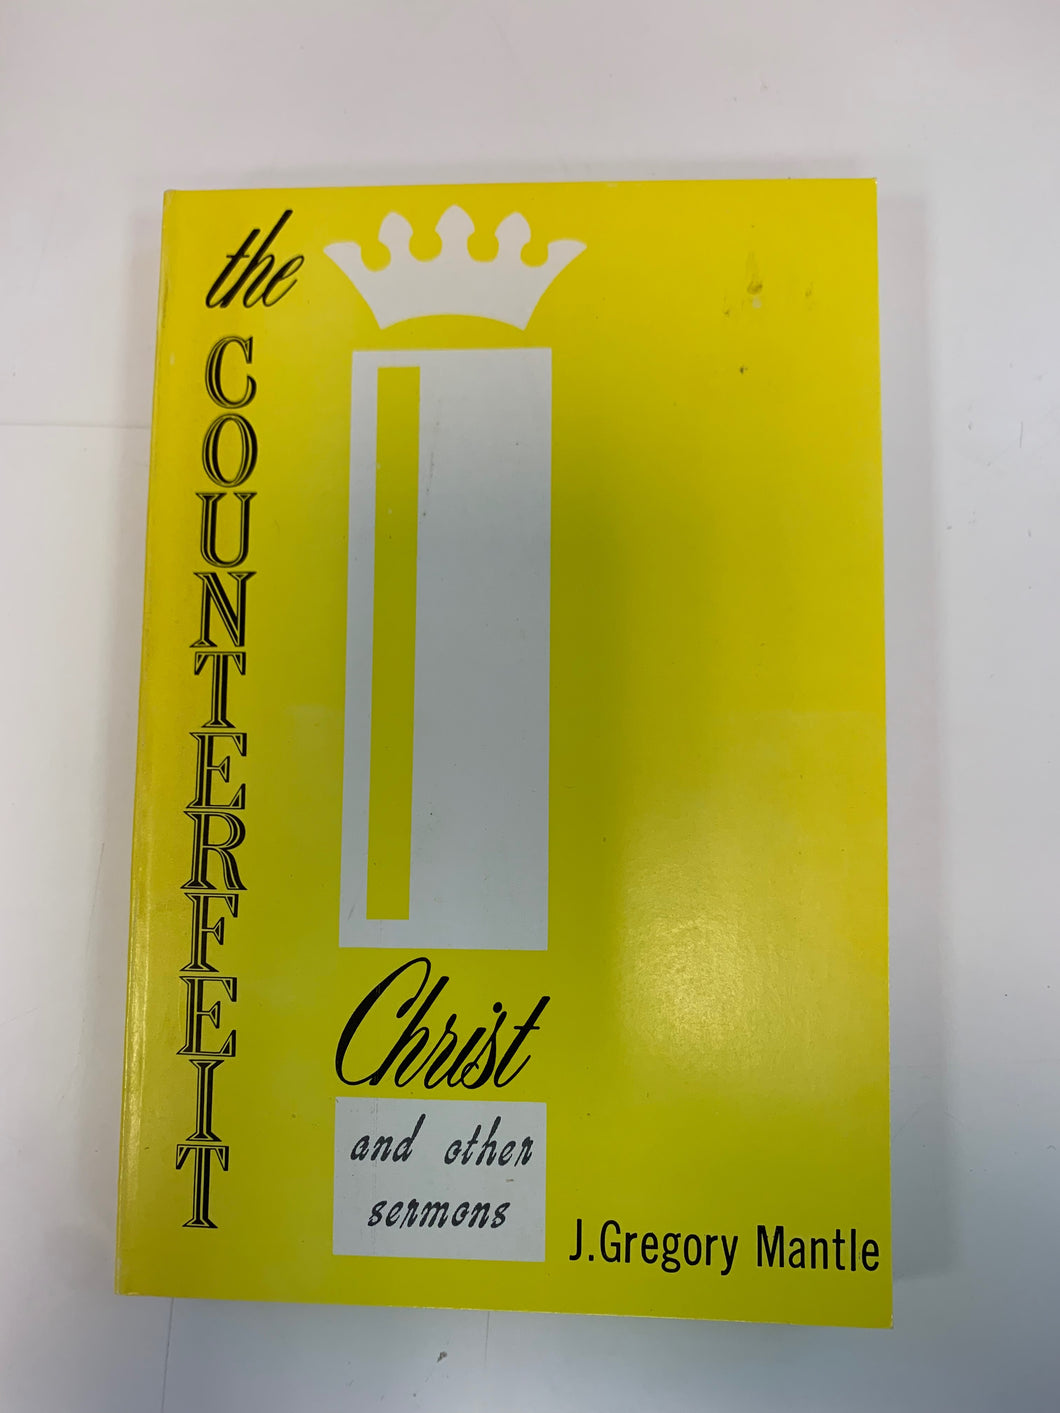 The Counterfeit Christ and Other Sermons by J. Gregory Mantle